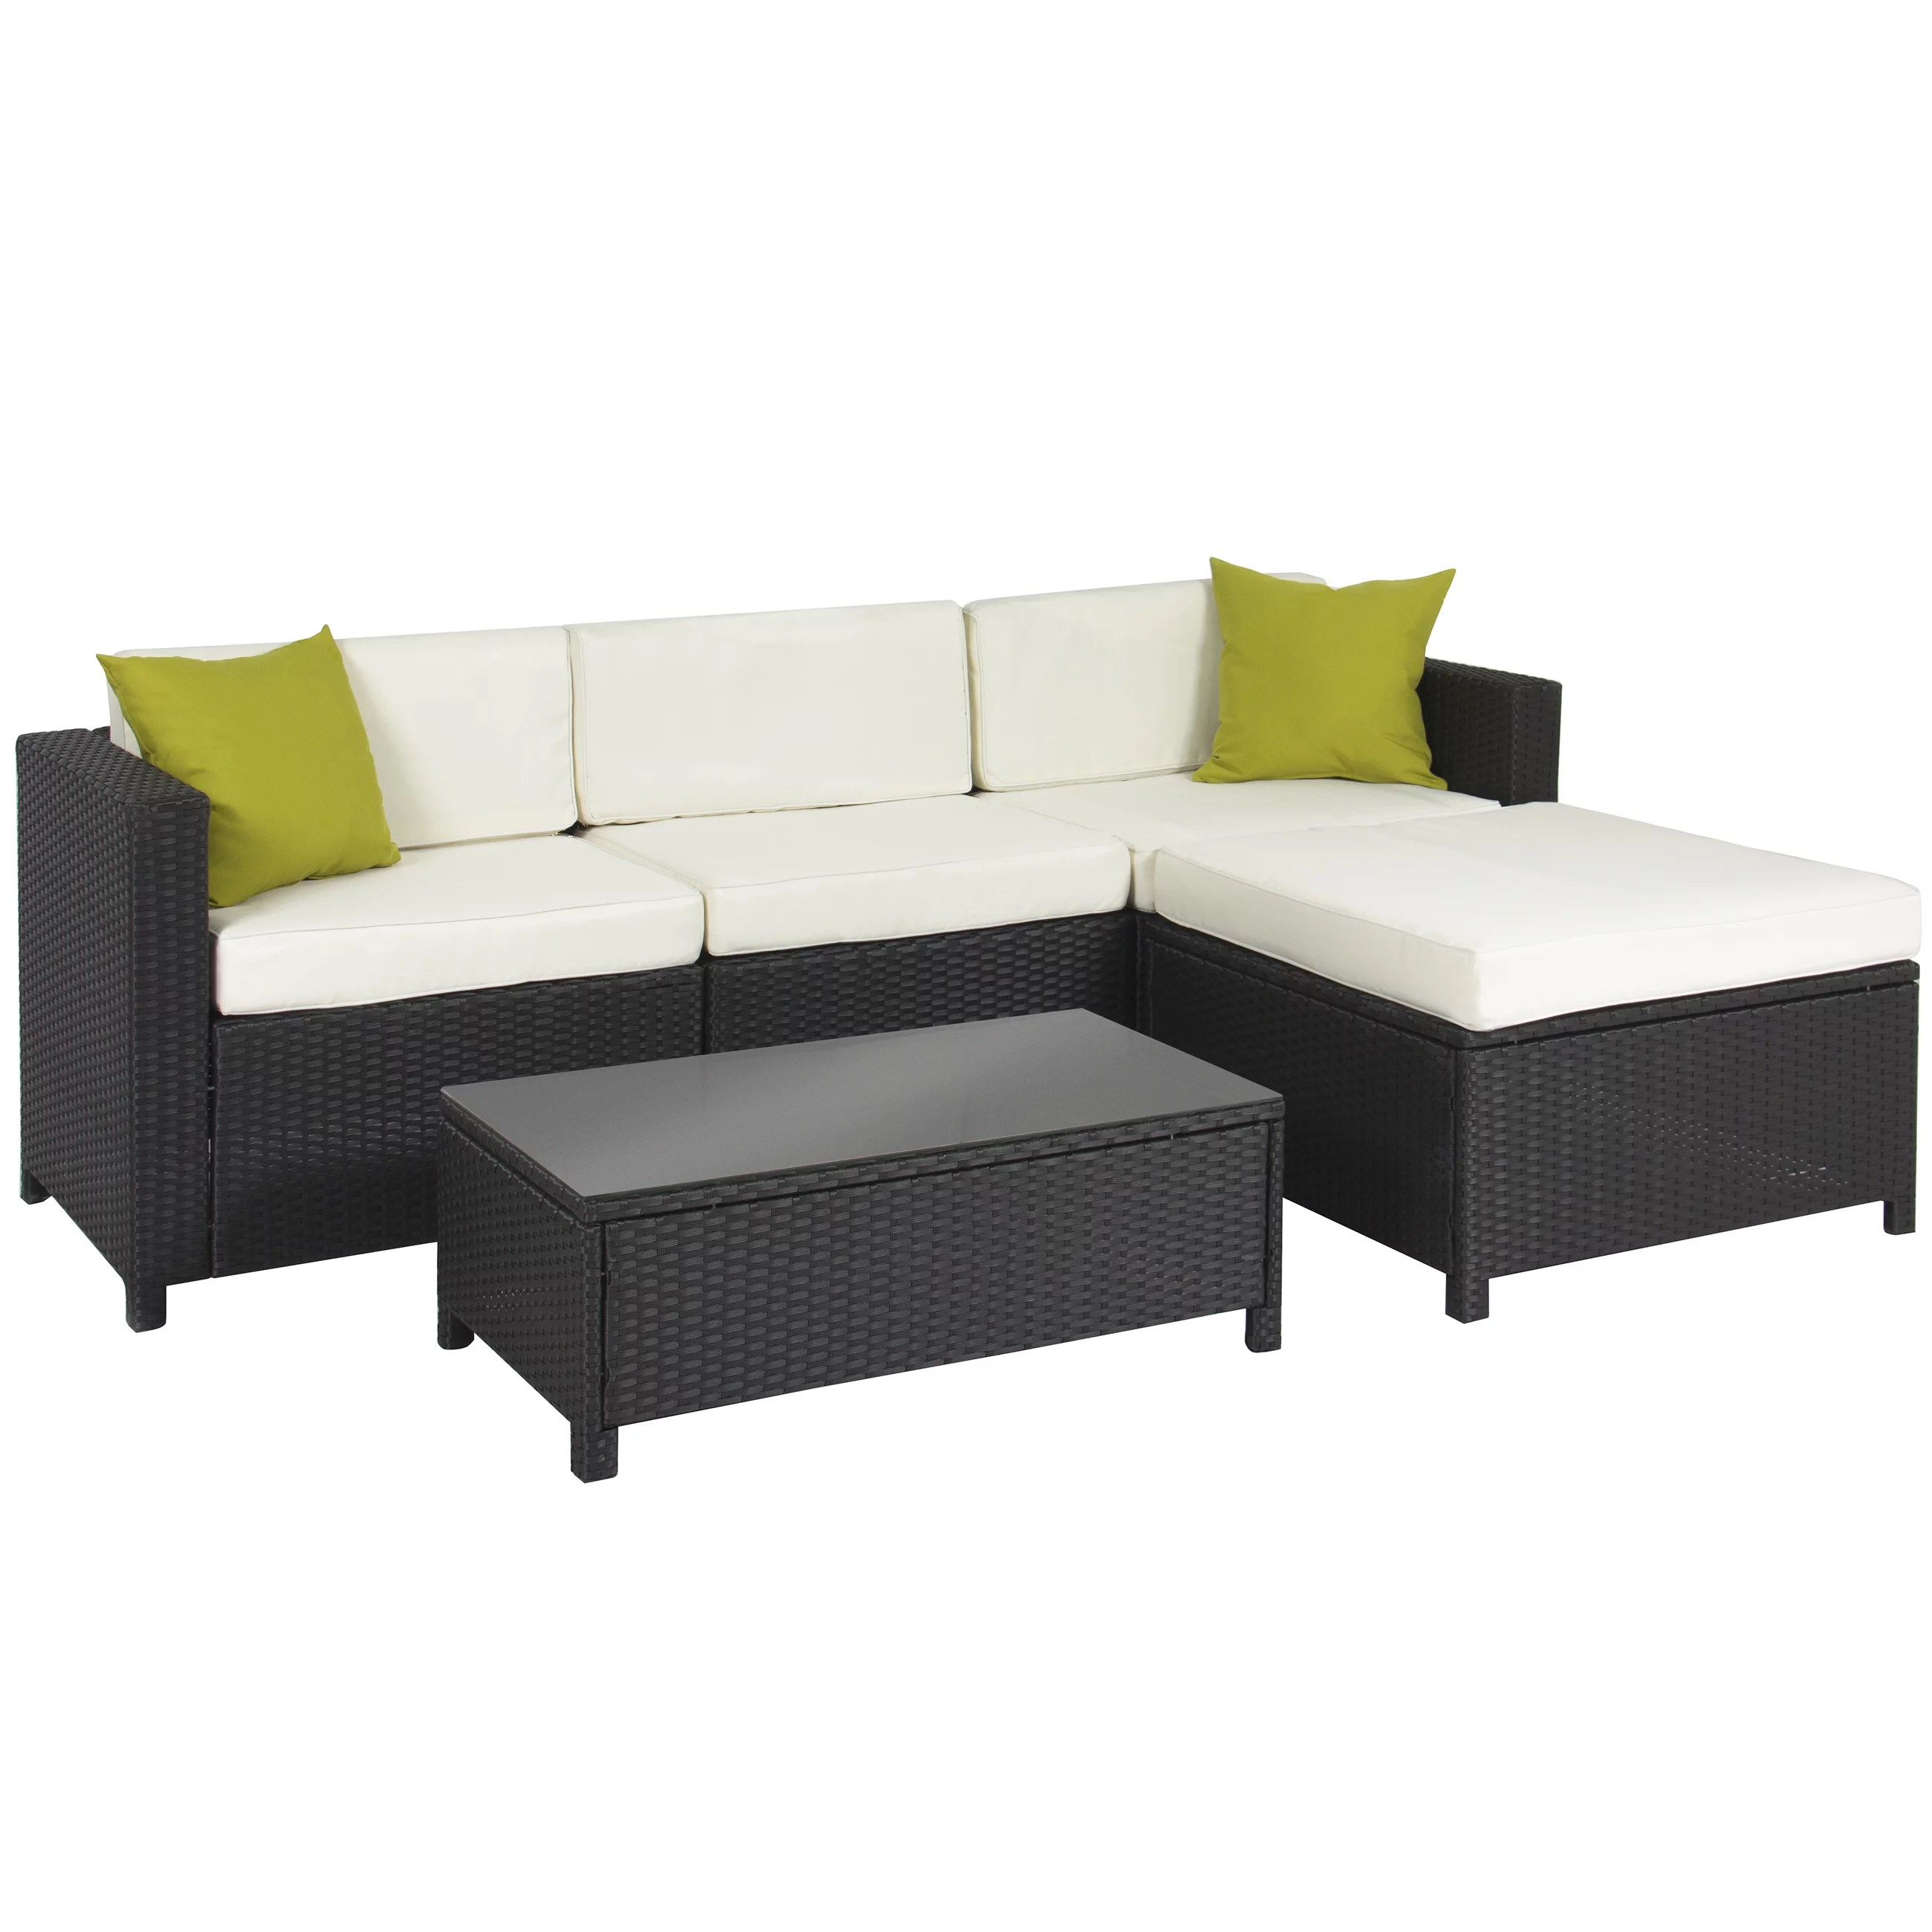 Rattan Sofa Near Me Best Choice Products 5 Piece Modular Wicker Patio Sectional Set W Glass Tabletop Removable Cushion Covers Black